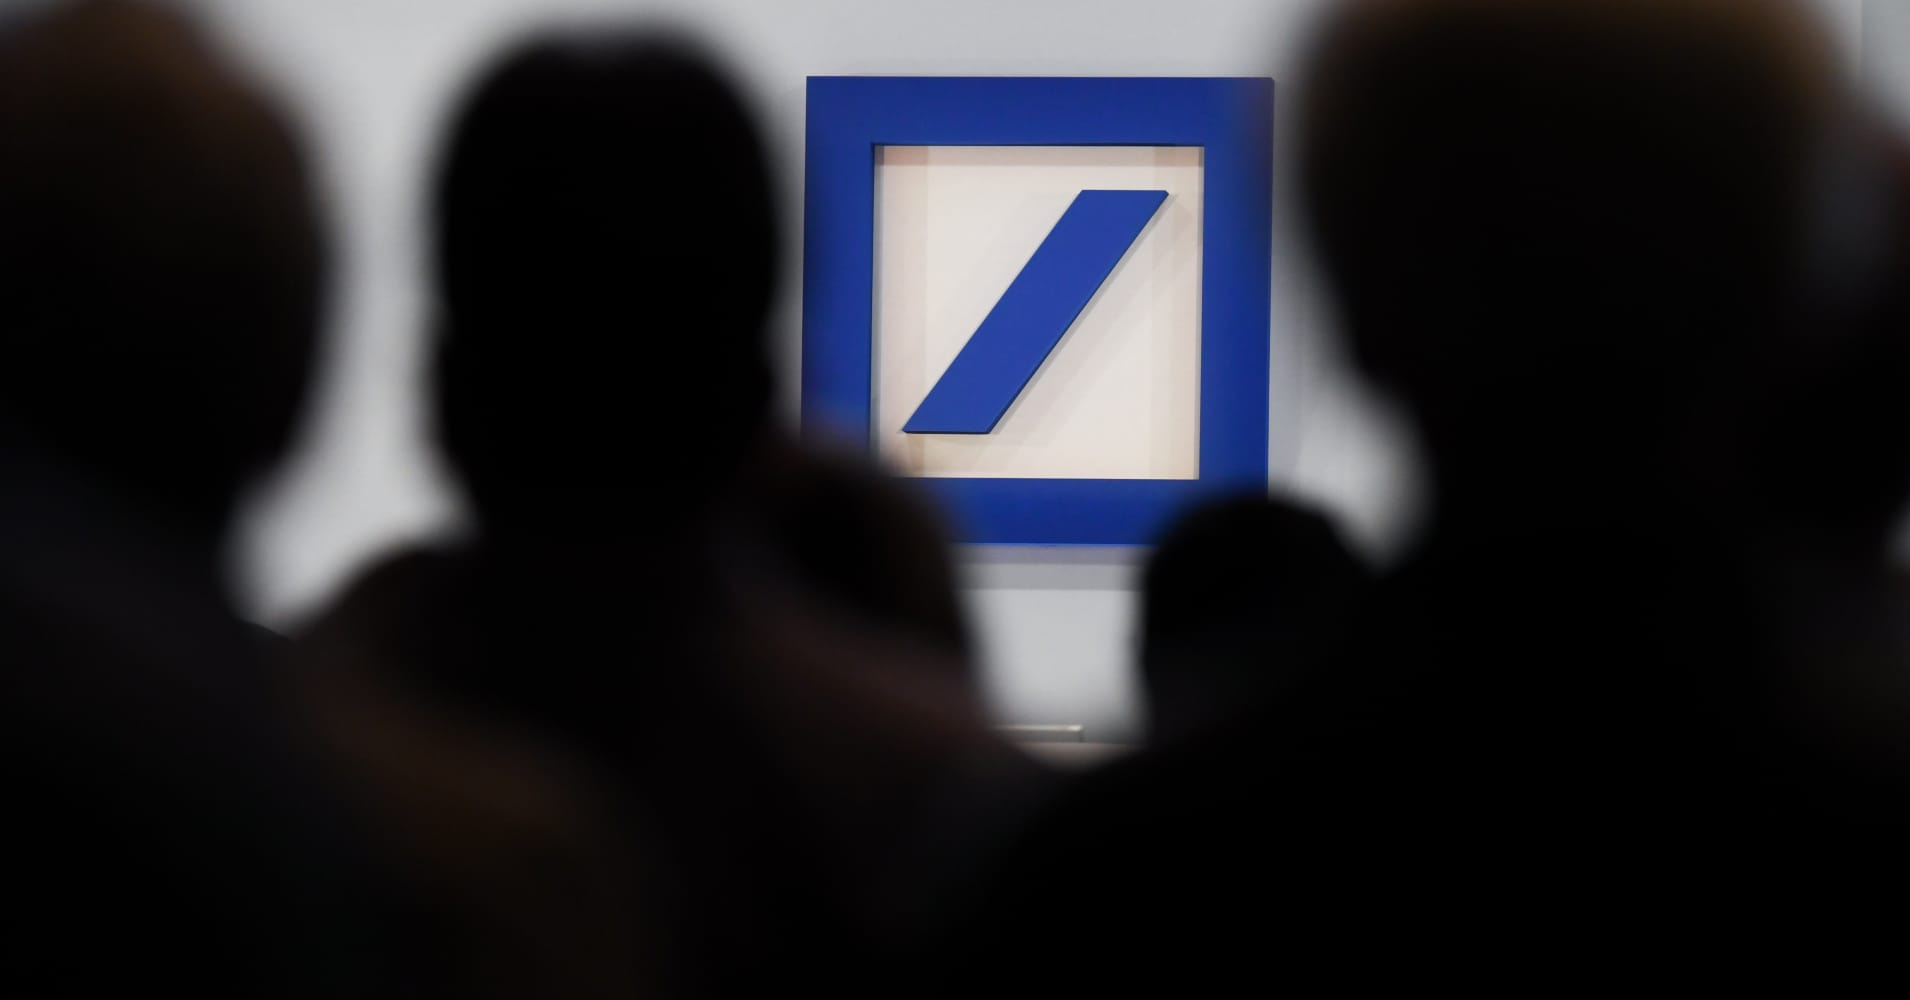 Deutsche Bank top management gets bonuses for first time in four years